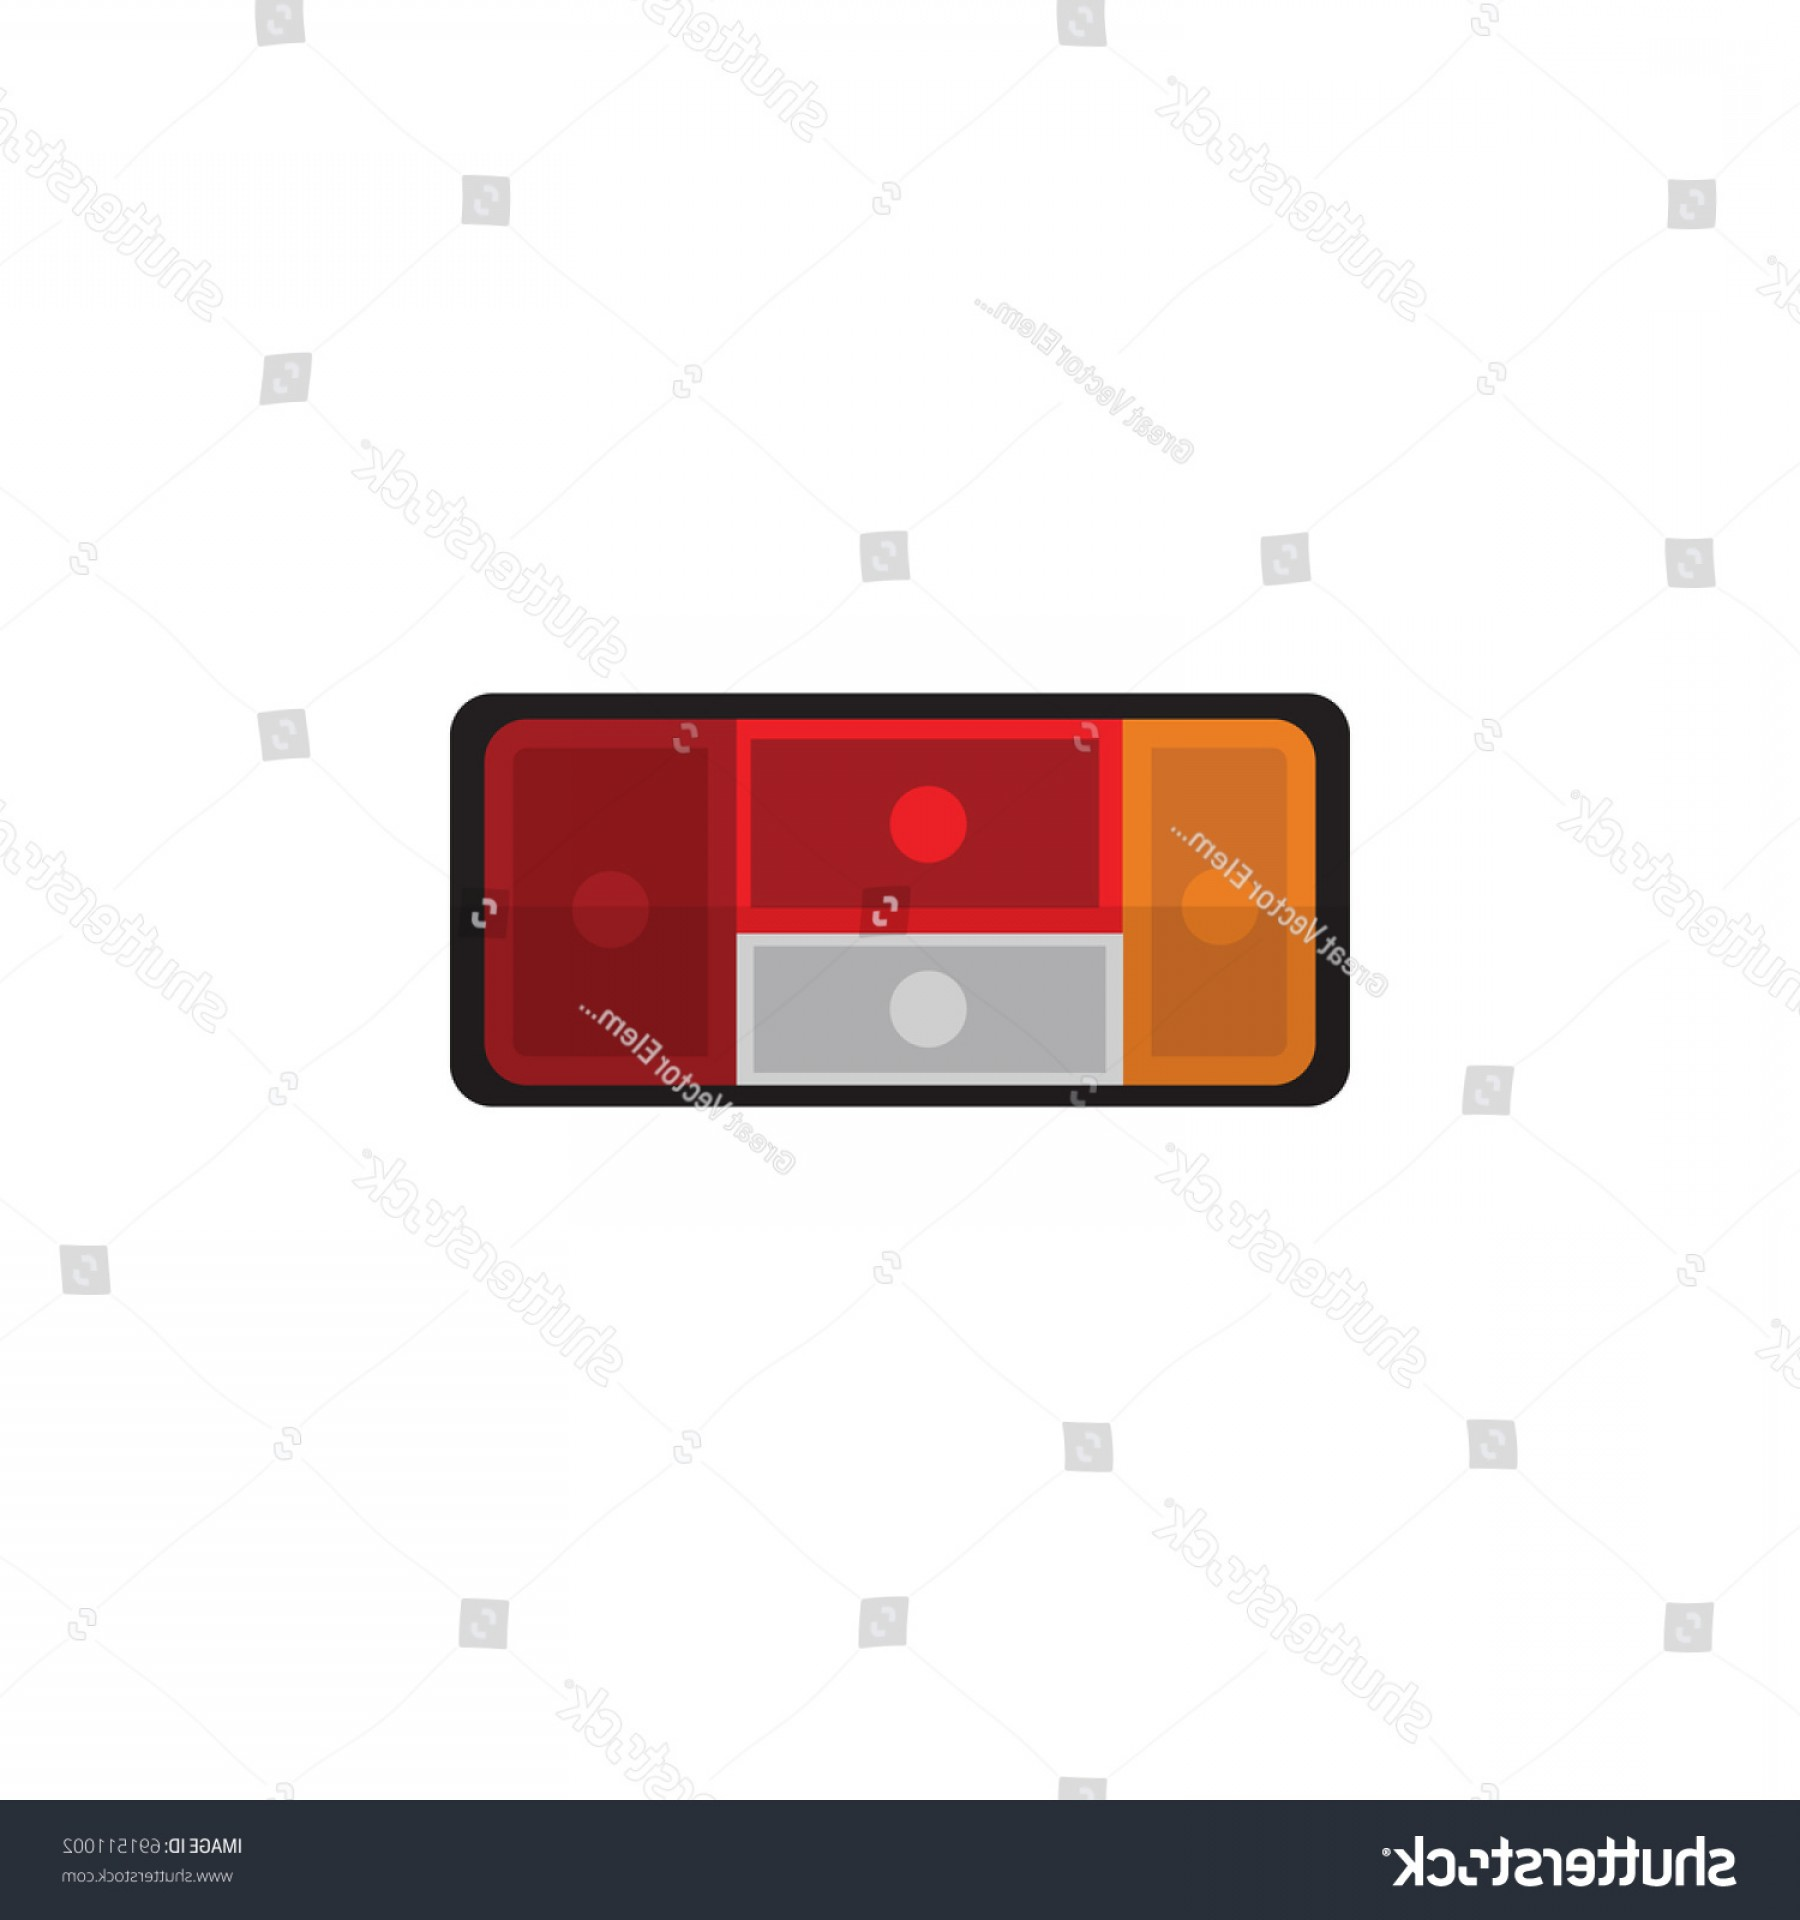 Headlight Vector Png: Cute Isolated Taillight Flat Icon Headlight Vector